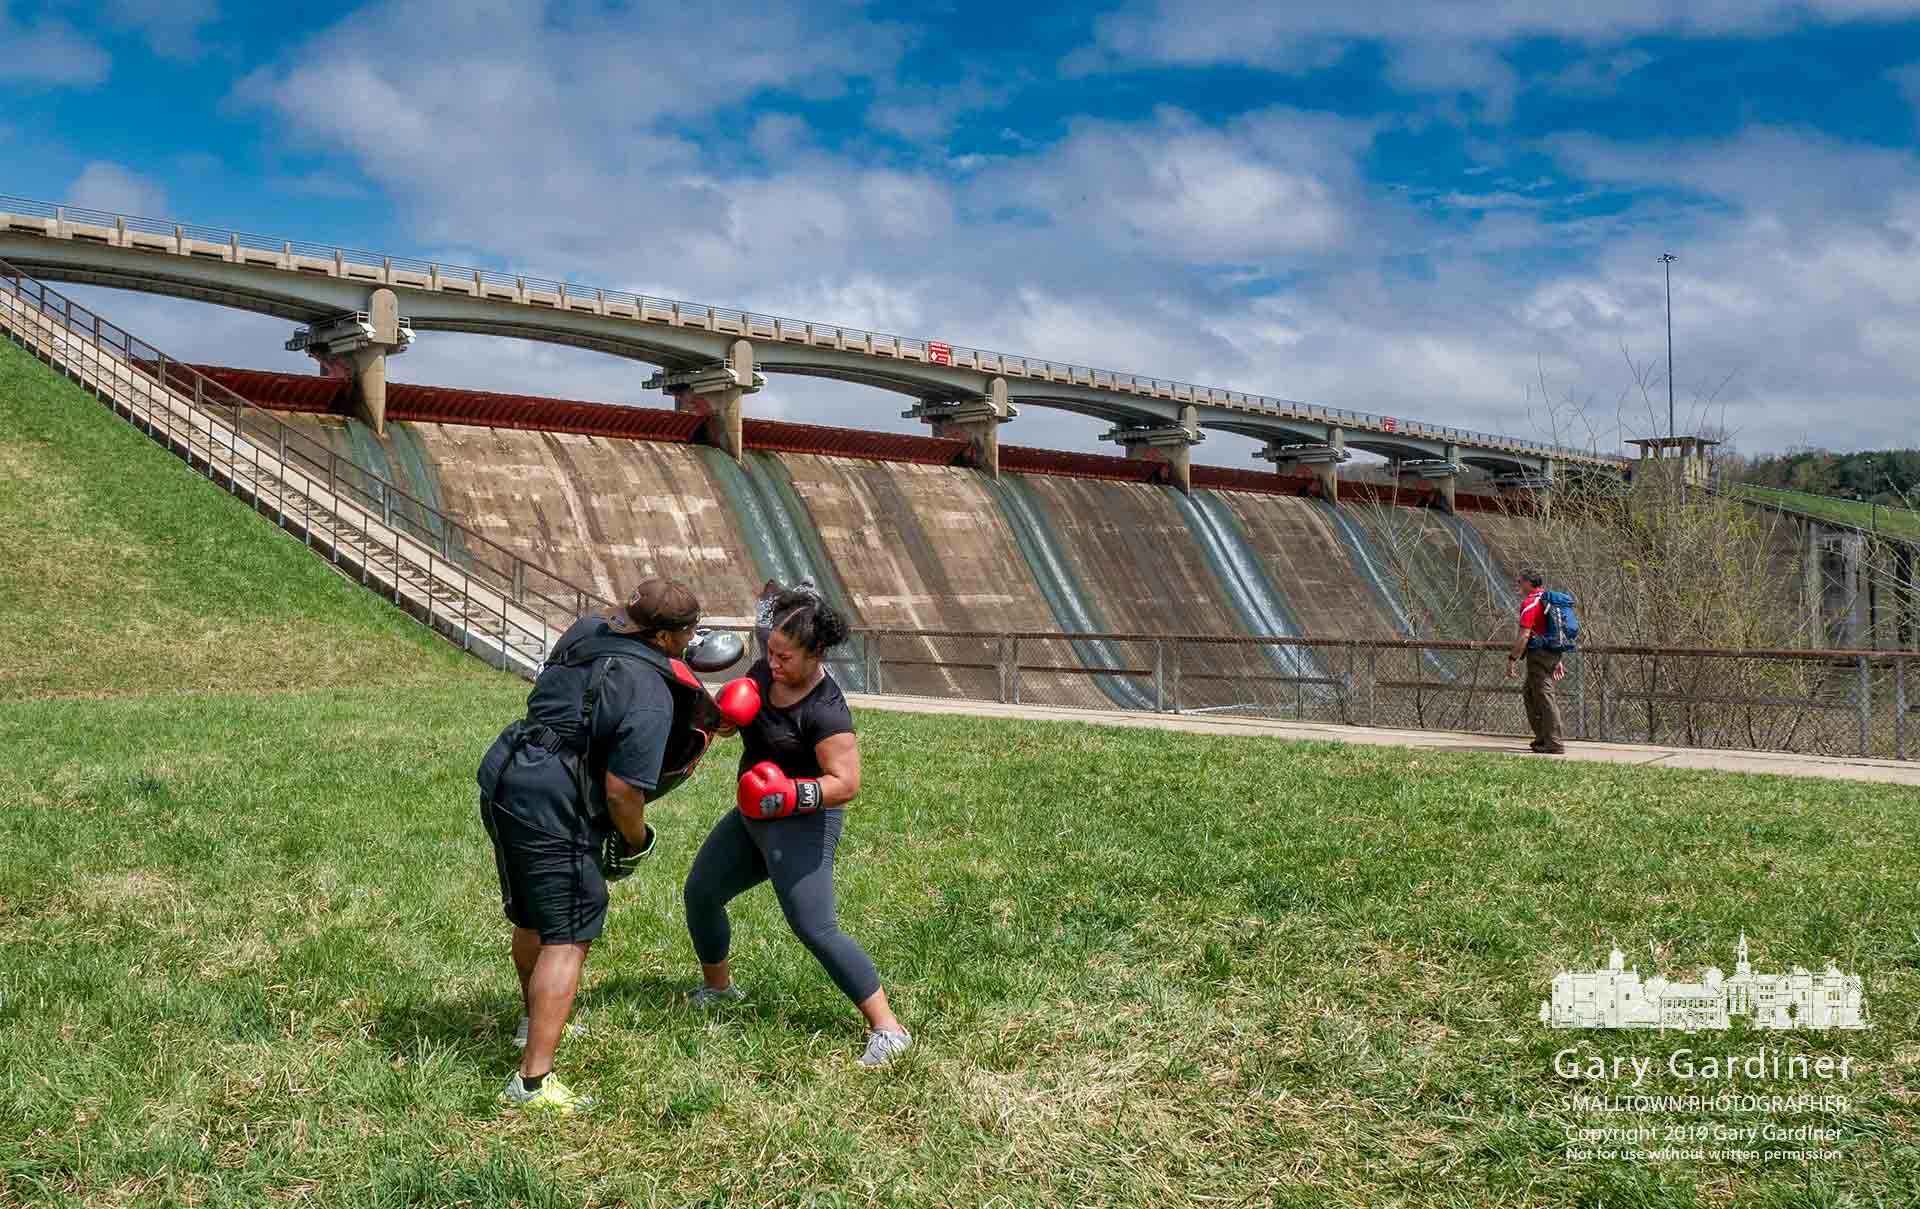 A pair of boxers train on the grassy landing at the base of Hoover Dam as another person trains for a summer hiking adventure in West Virginia on a sunny and crisp Sunday afternoon. My Final Photo for April 14, 2019.